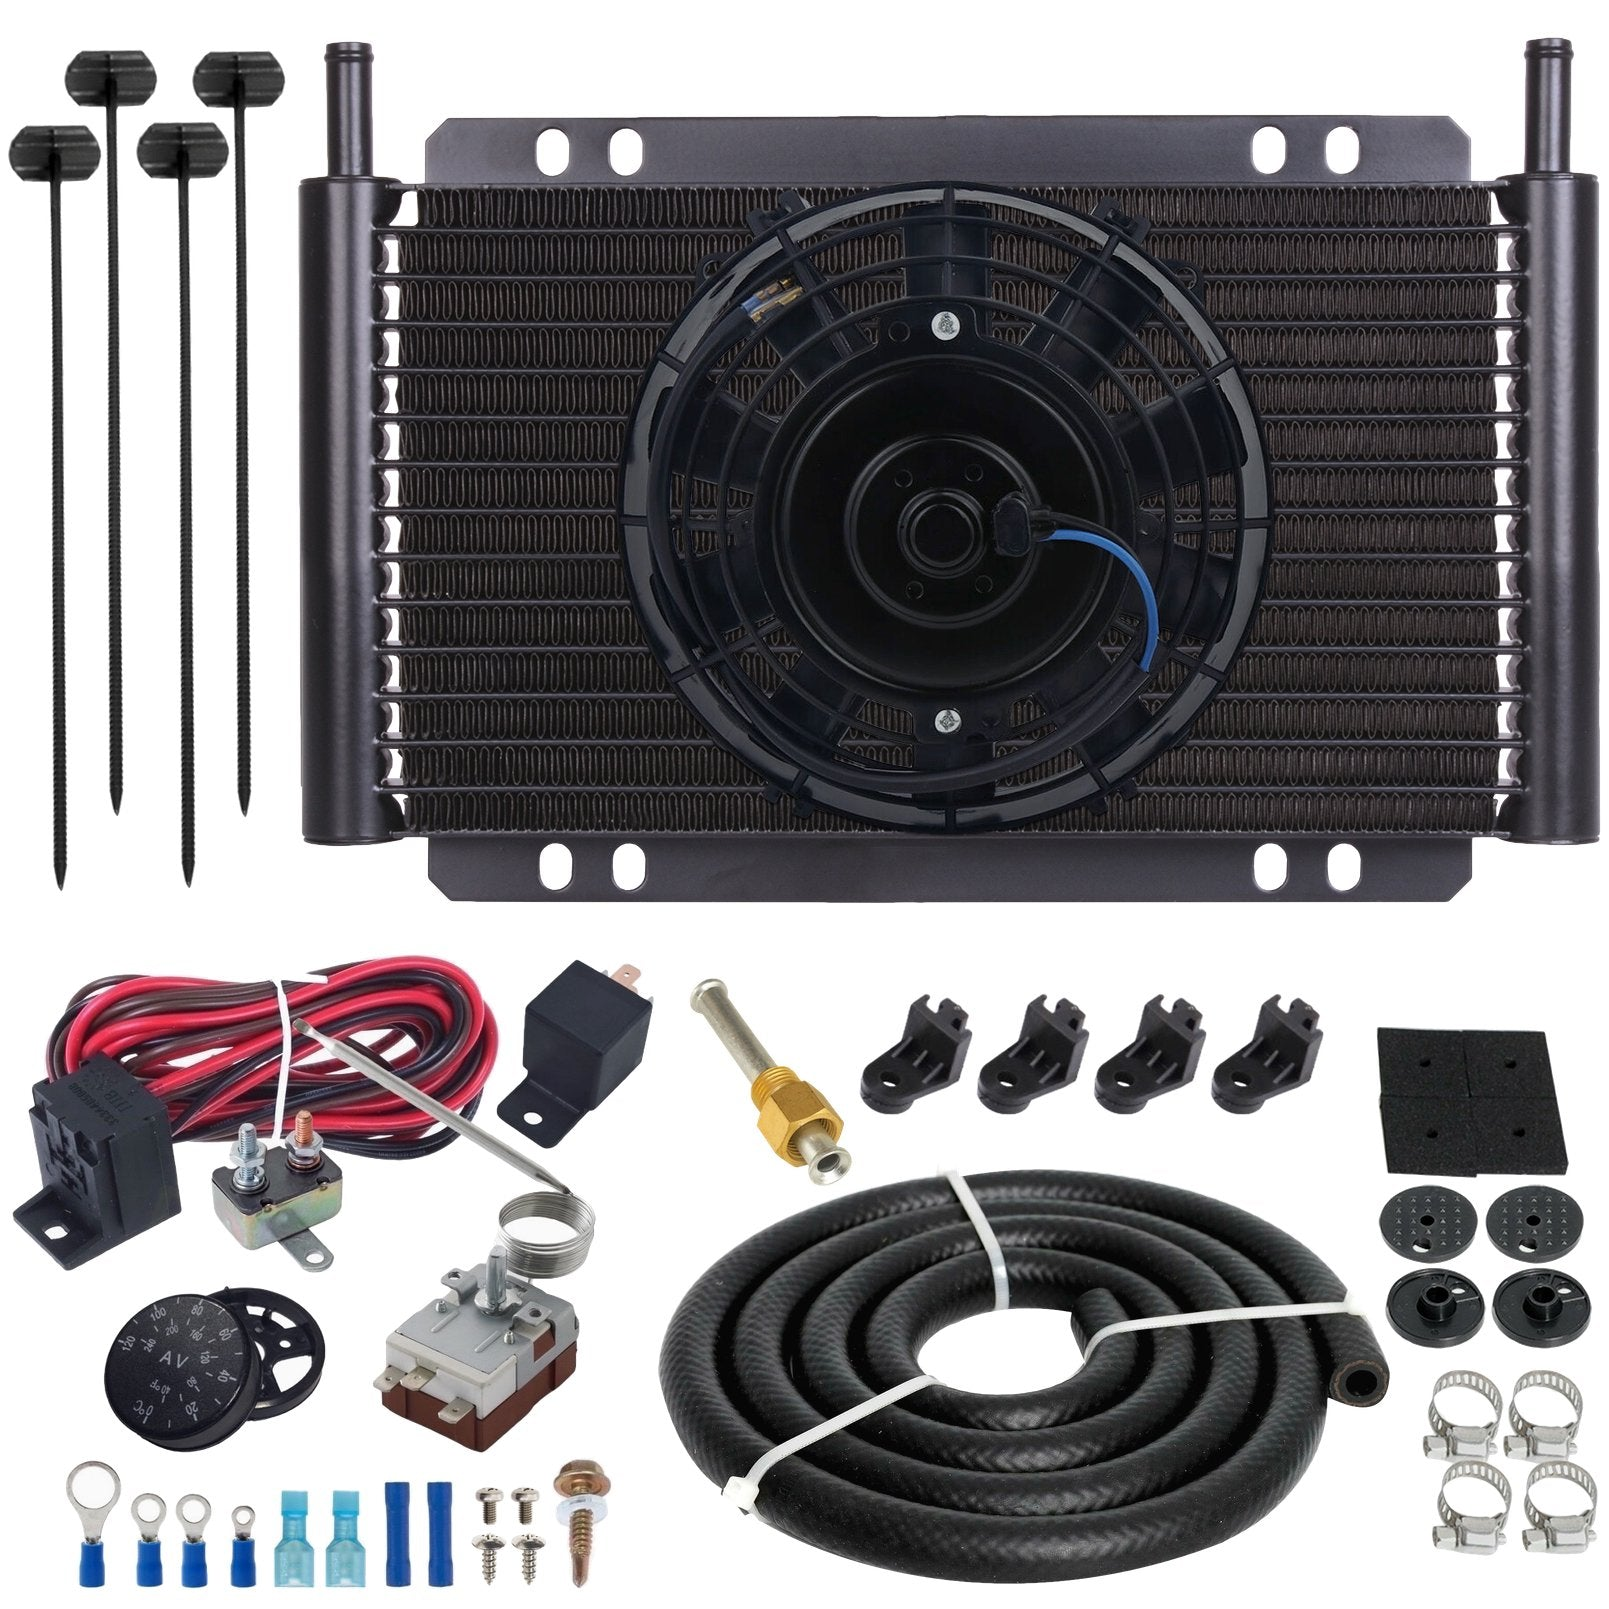 "17 Row Engine Transmission Oil Cooler 6"" Electric Fan Adjustable Thermostat Controller Switch Kit-Oil Cooler-American Volt-6AN-American Volt"